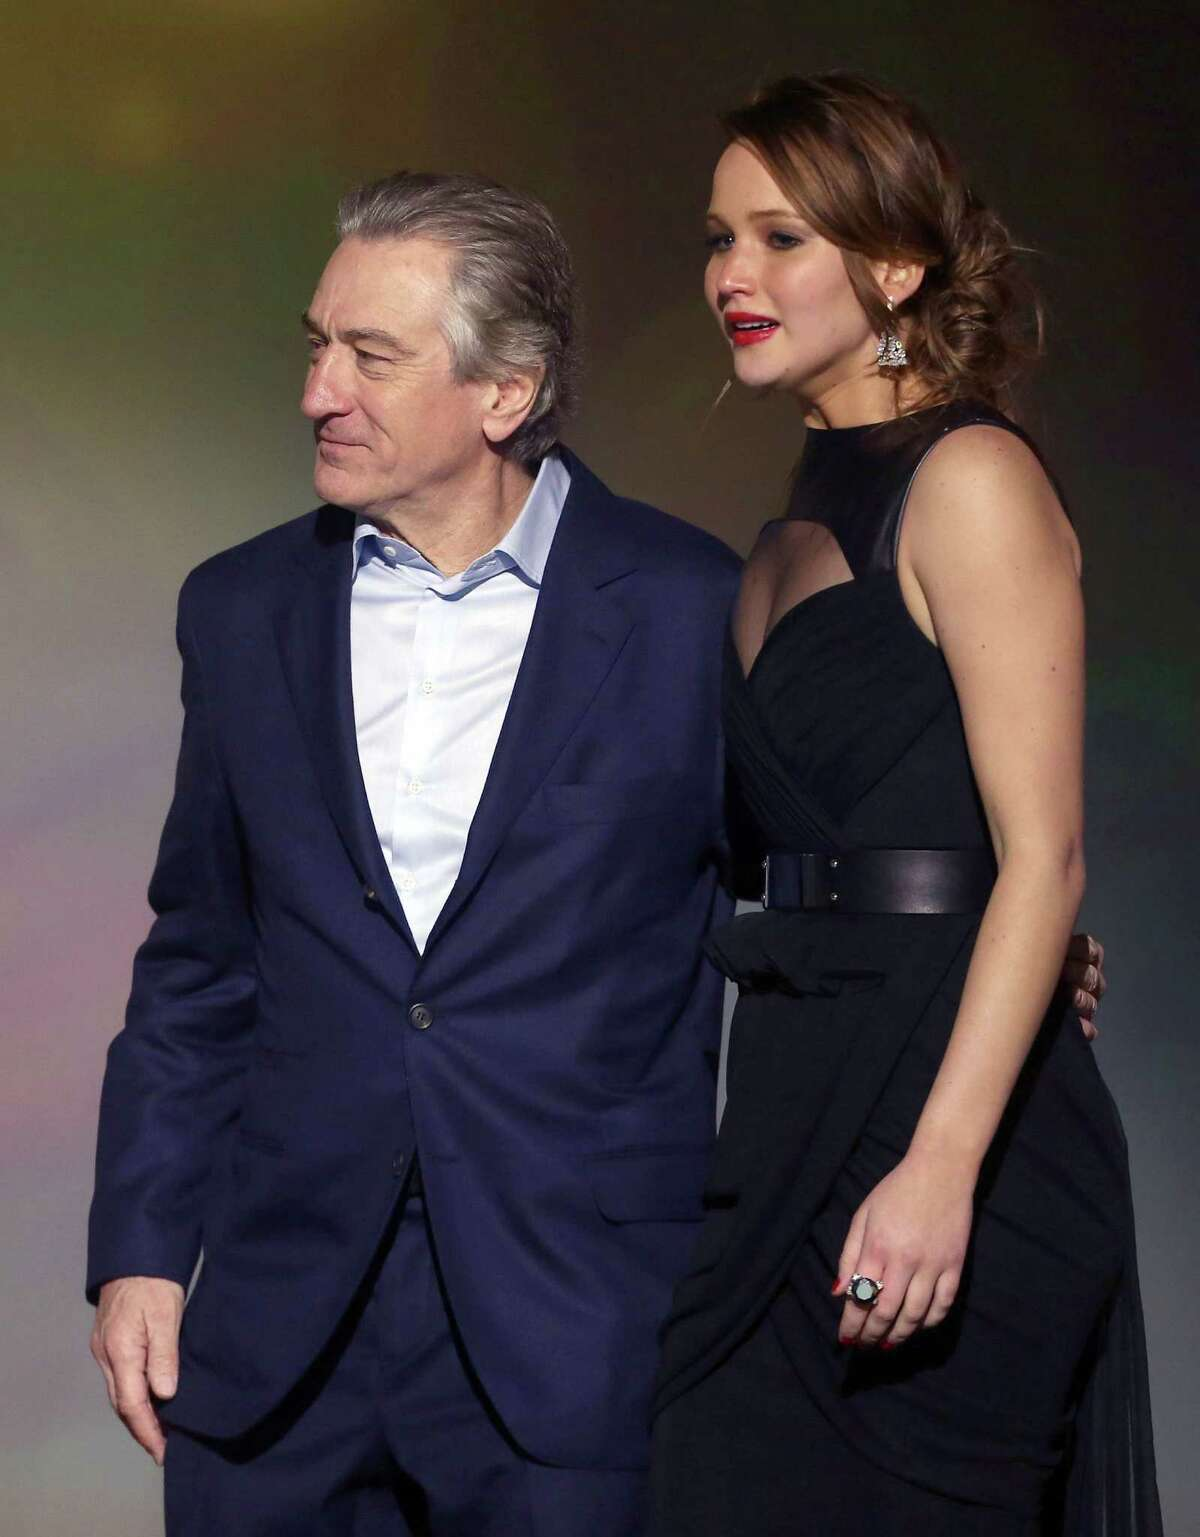 Robert De Niro, left, and Jennifer Lawrence are seen on stage.